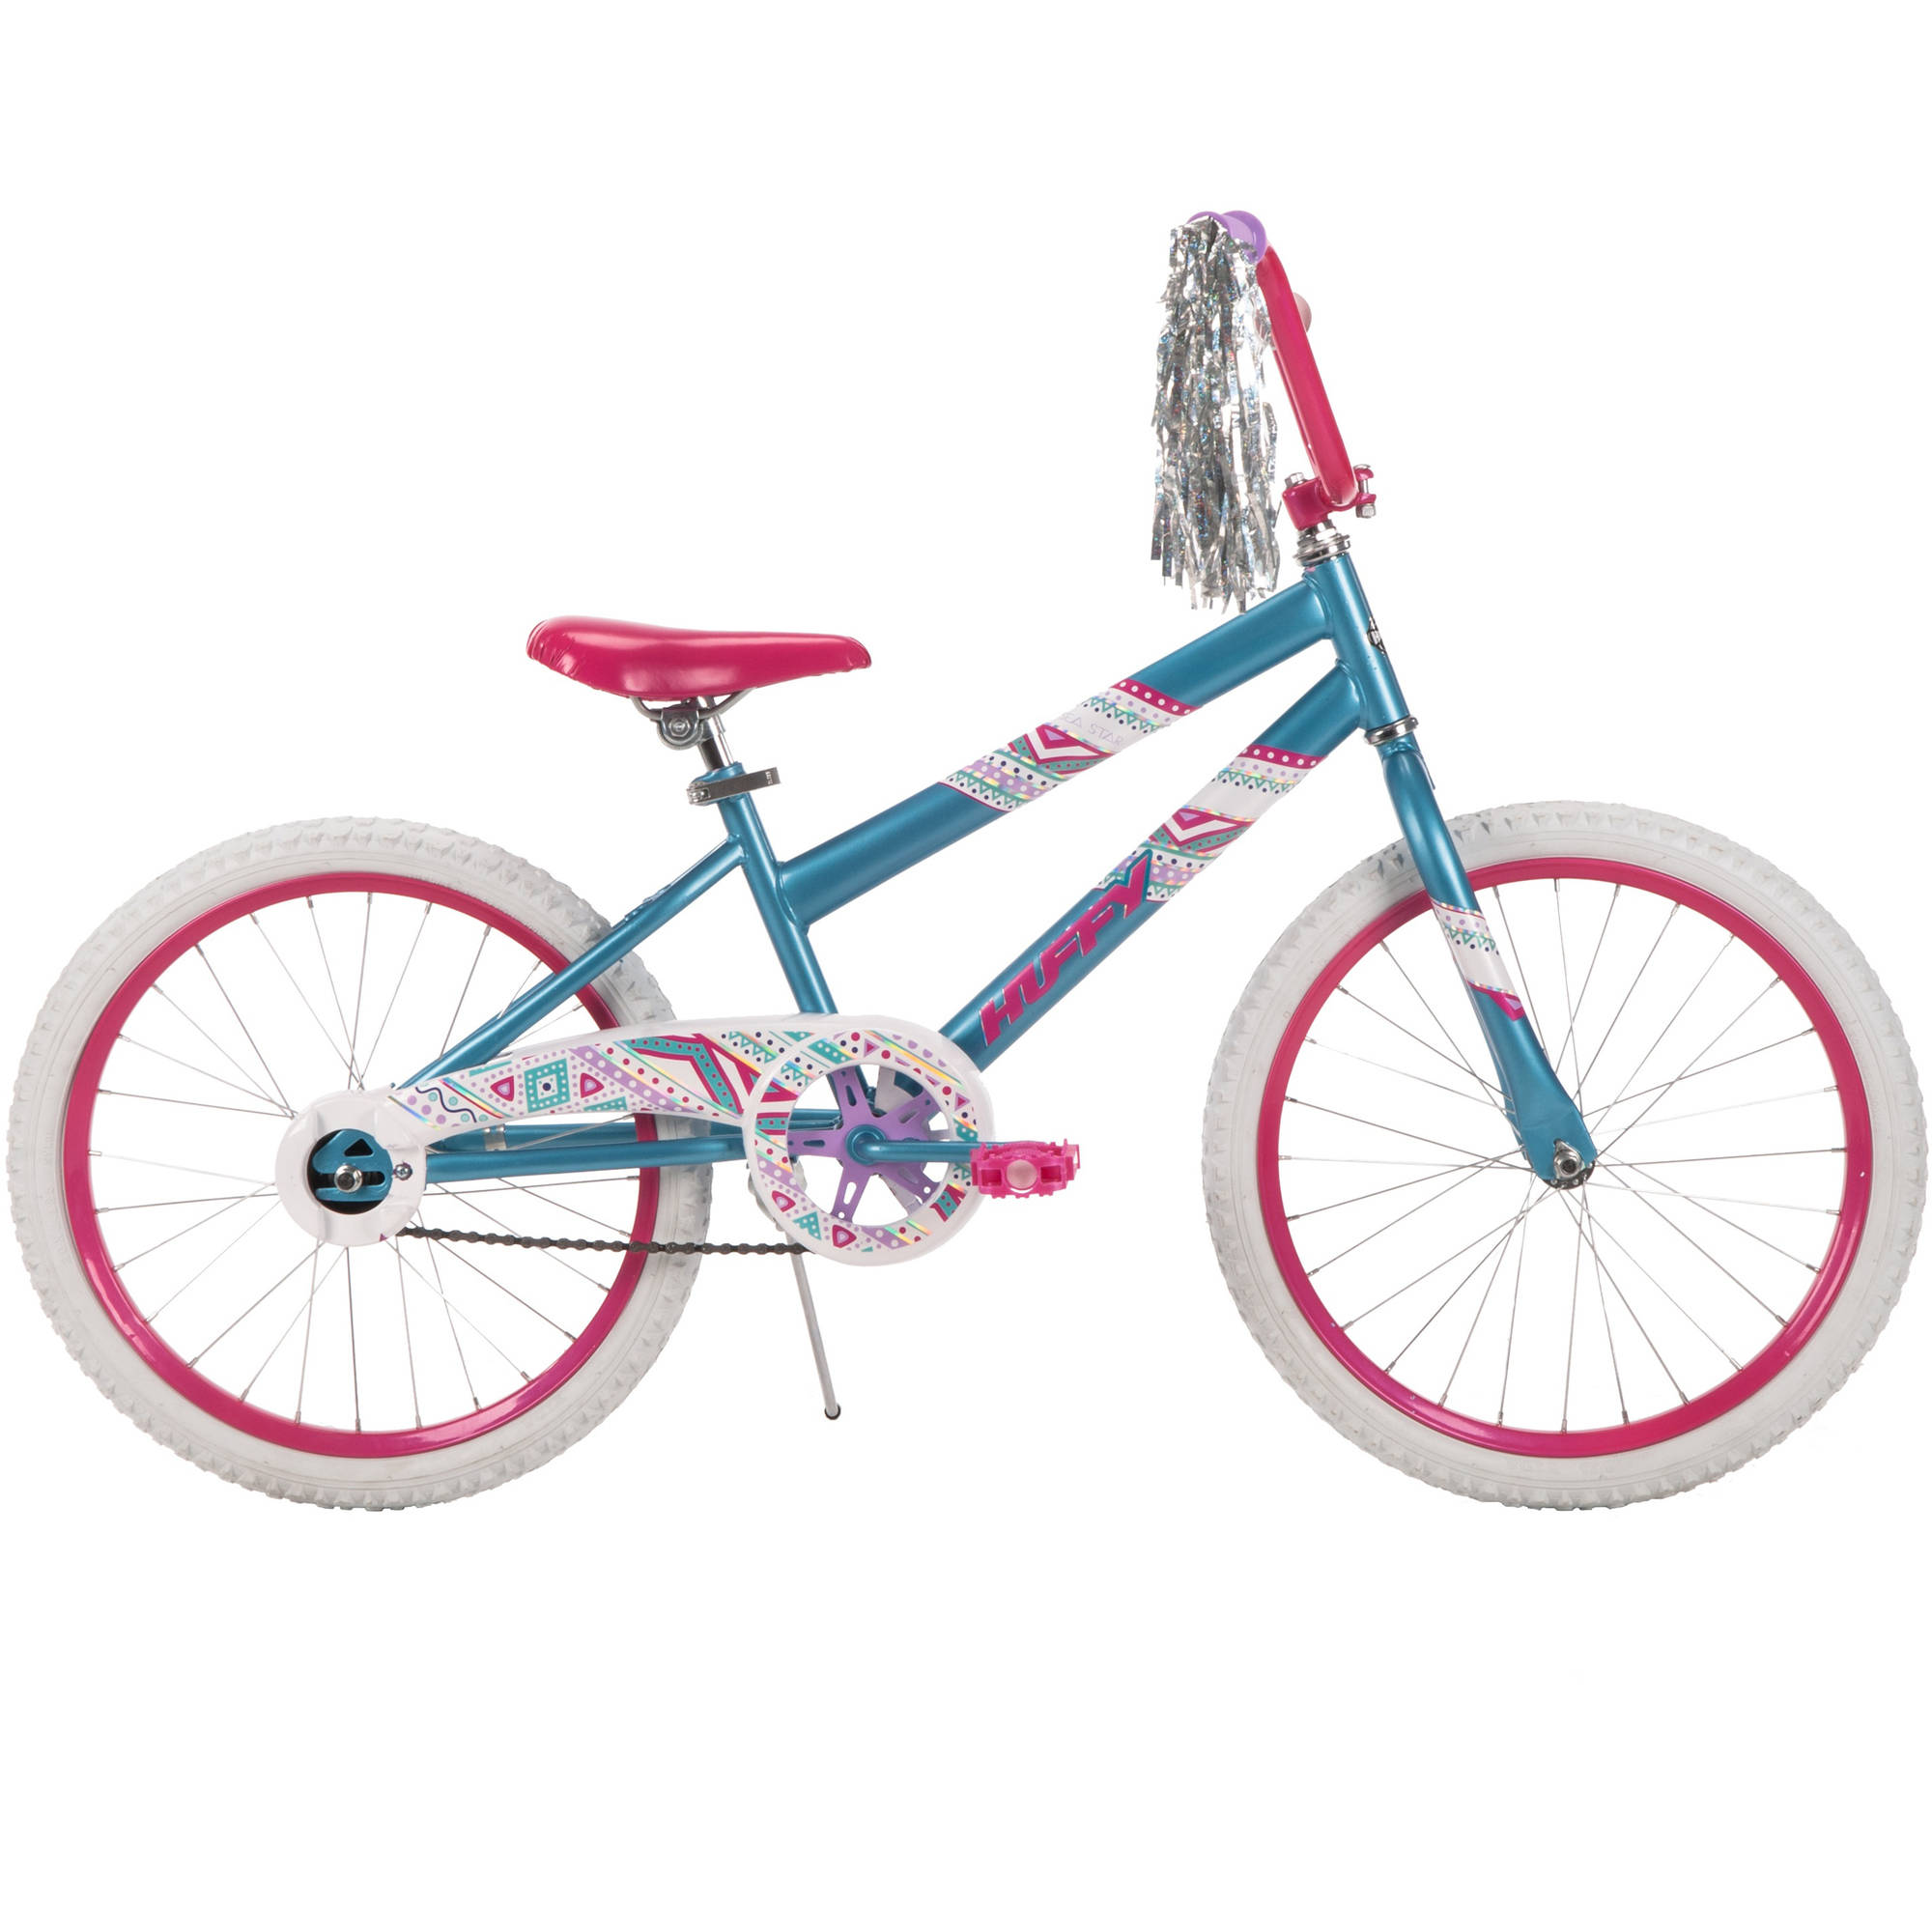 "20"" Huffy Girls' Sea Star Bike, Aqua Blue"